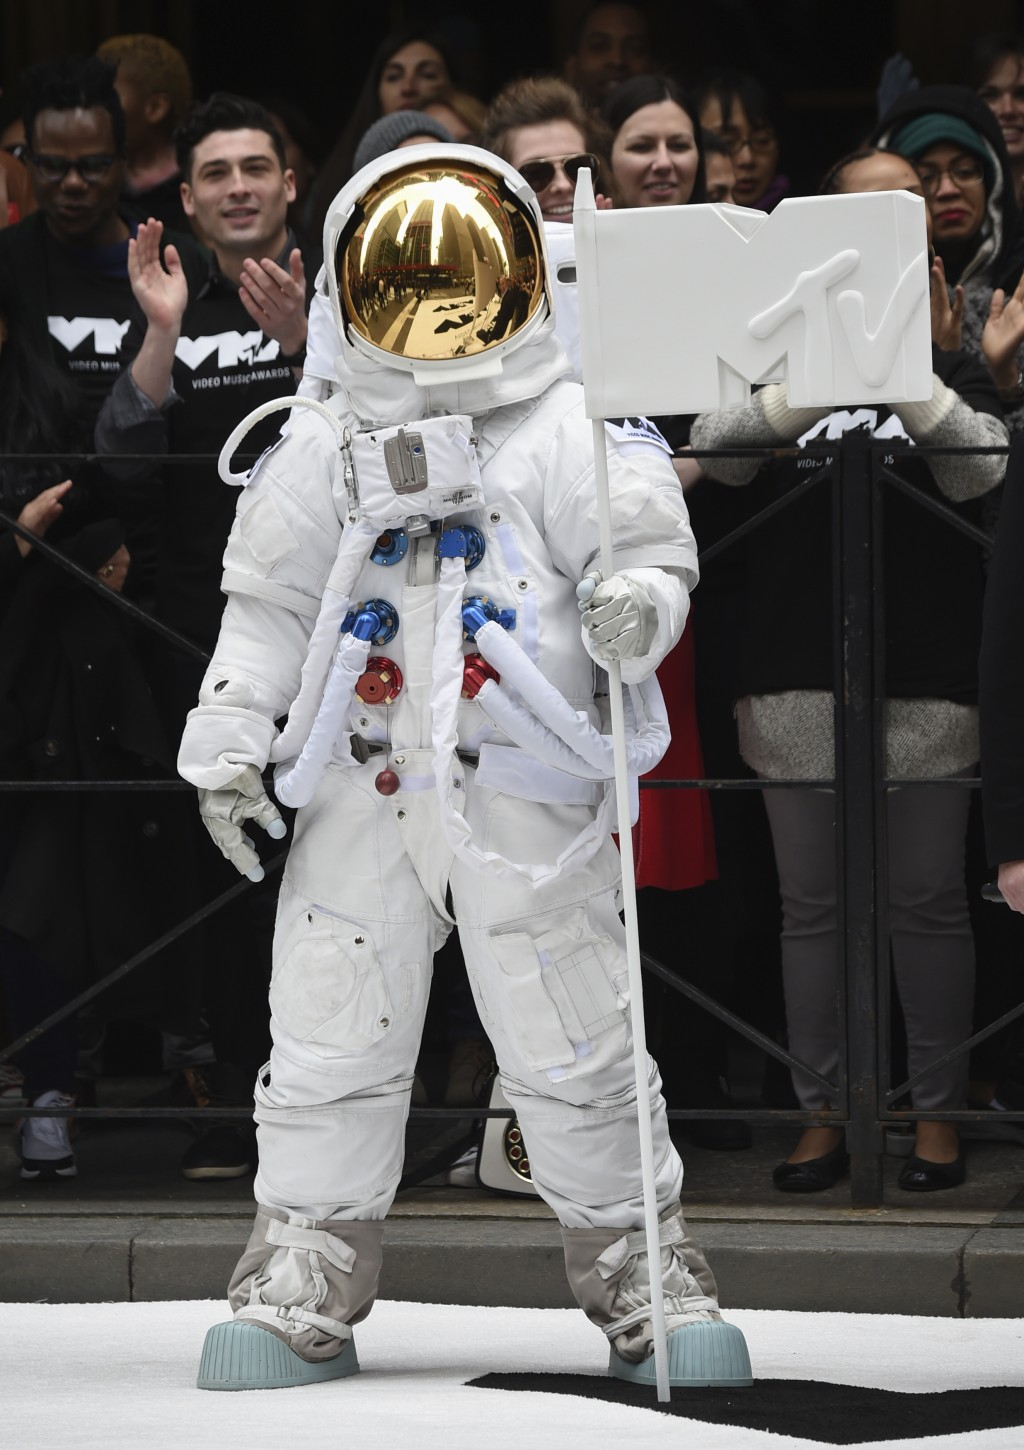 """The VMA """"Moon Person"""" participates in the 2018 MTV Video Music Awards date and location announcement at Radio City Music Hall on Tuesday, April 17, 20"""